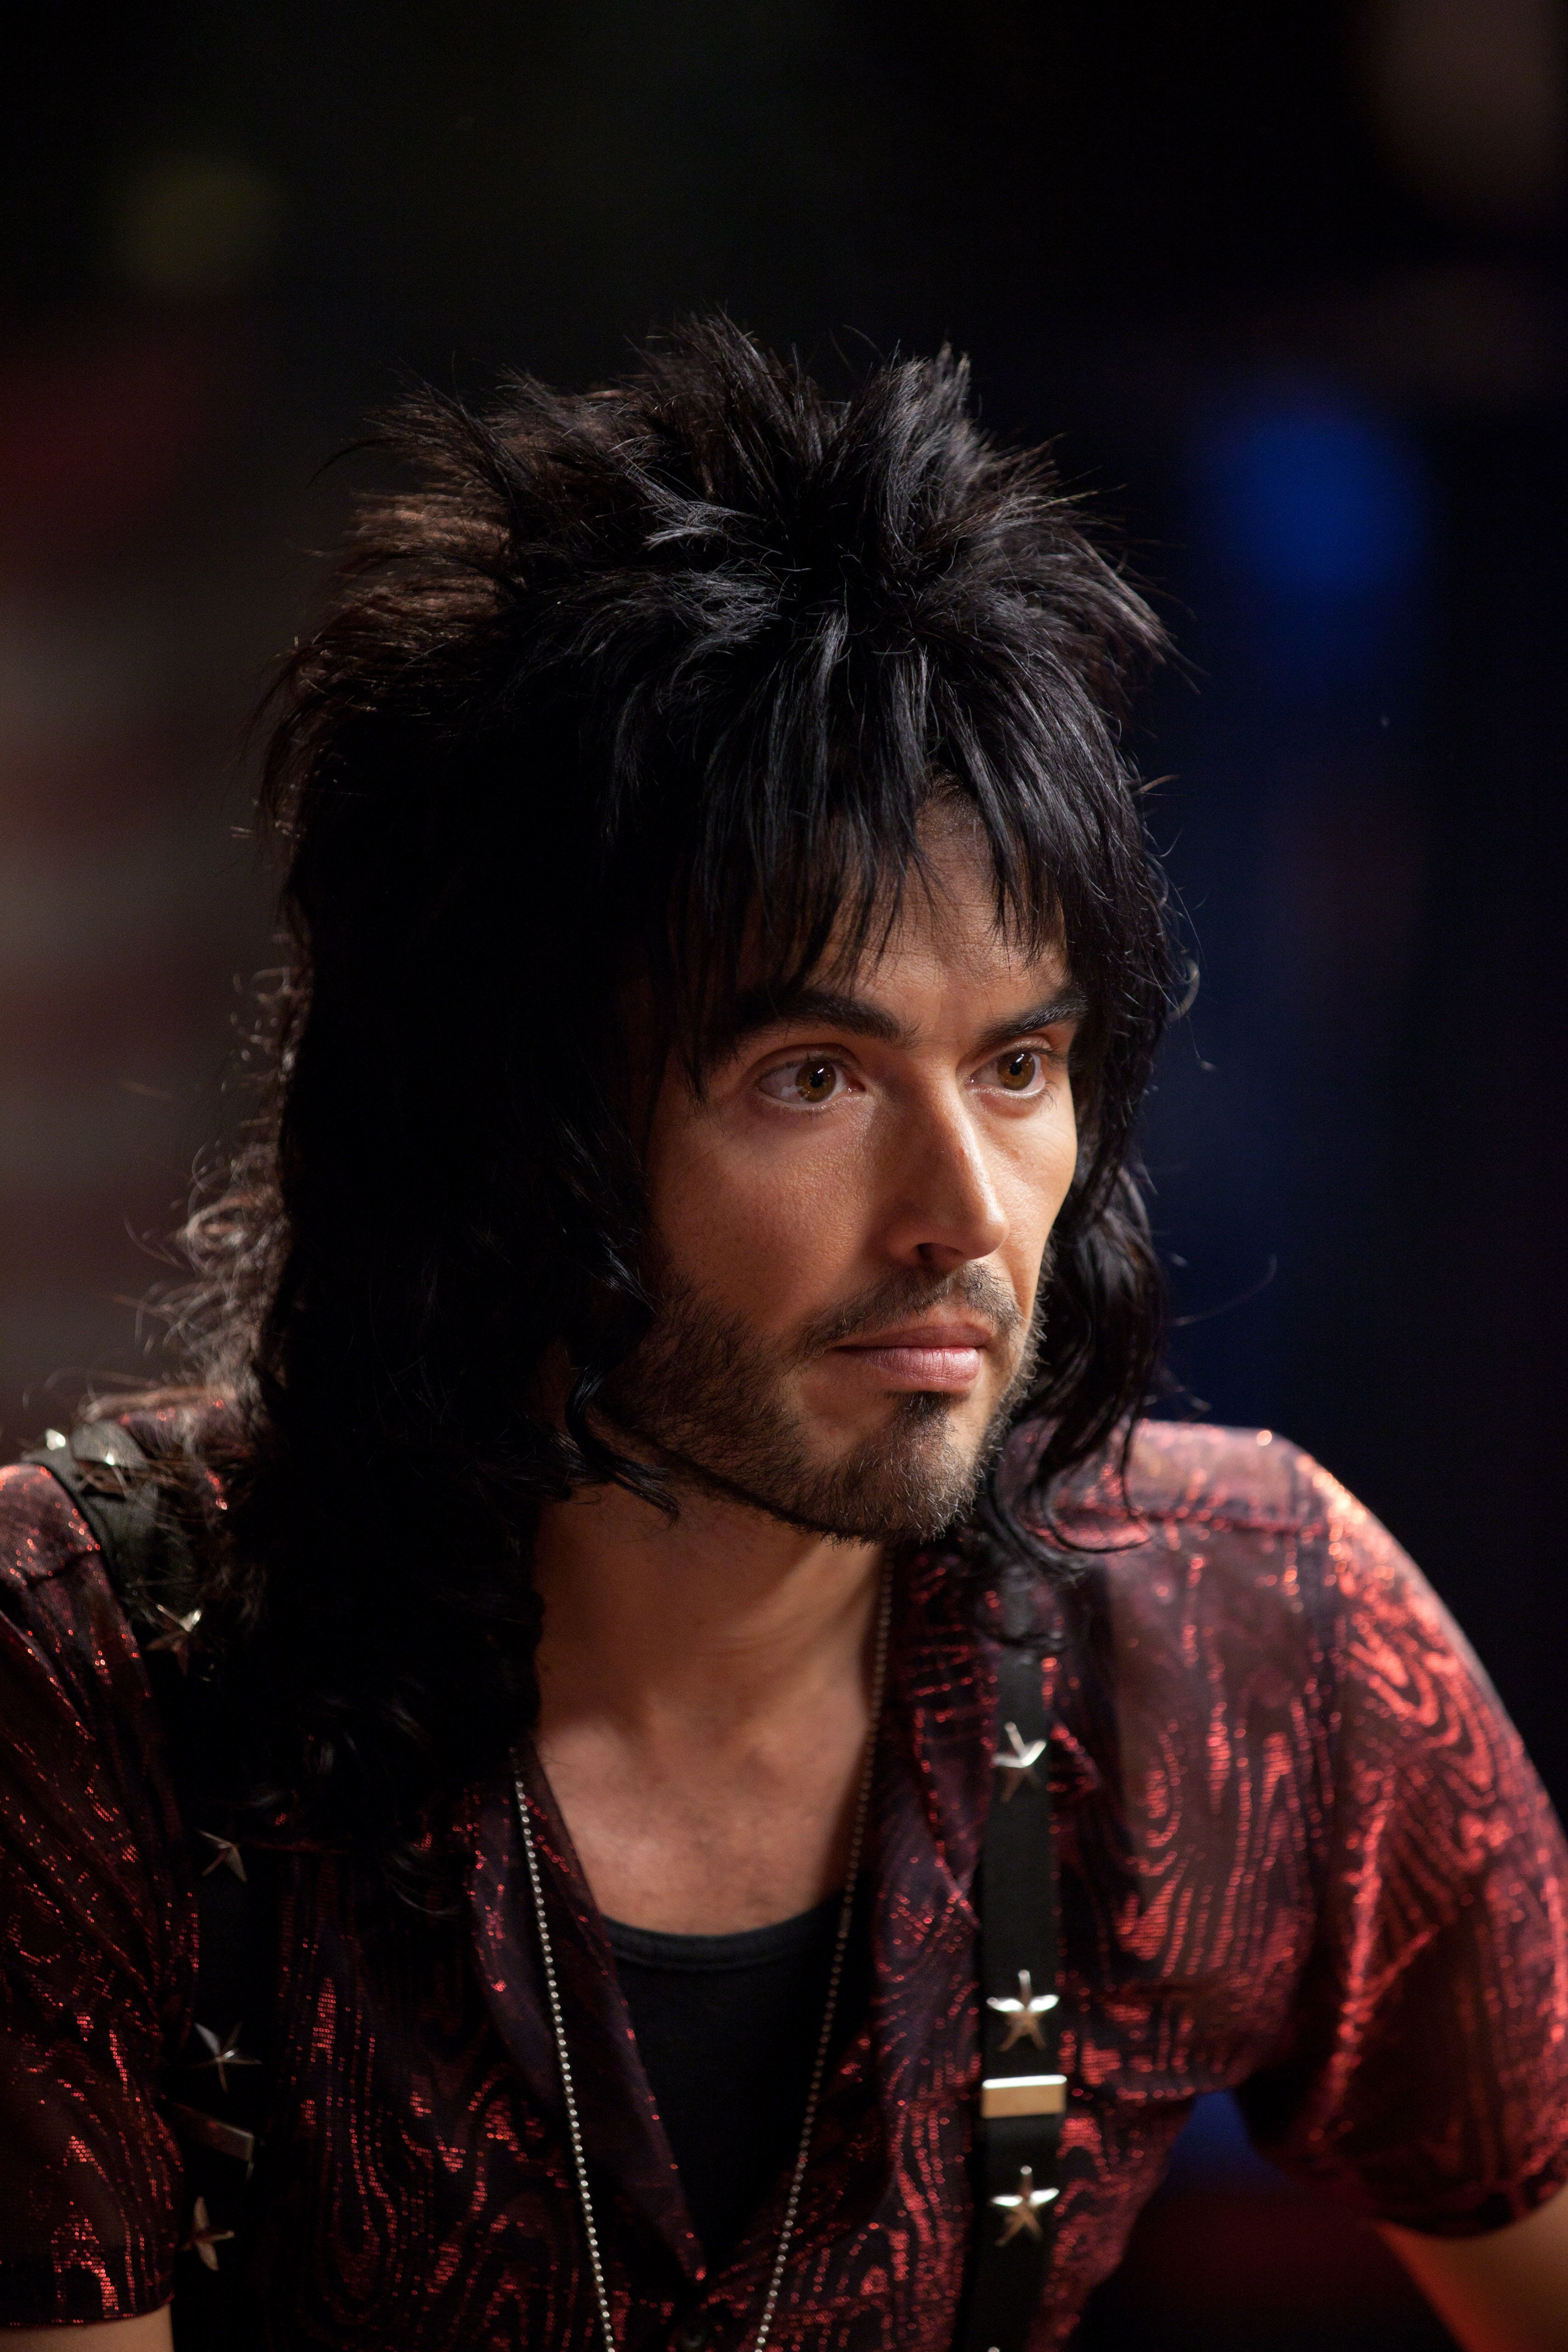 ROCK OF AGES Movie Images Featuring Tom Cruise   Collider